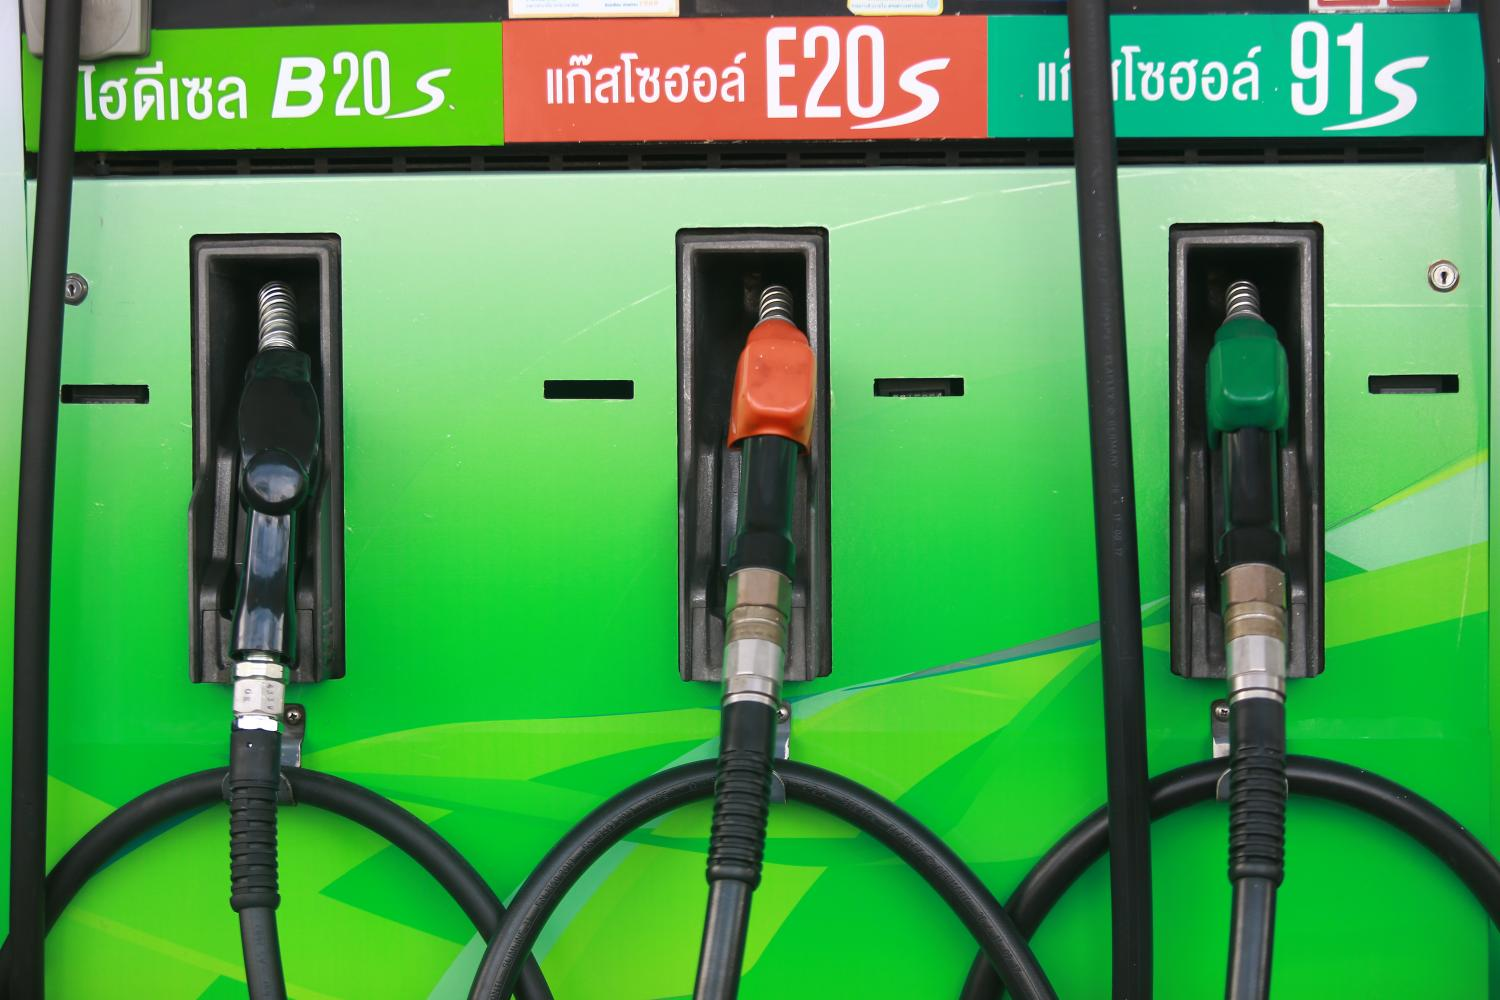 Retail prices for gasohol and diesel have been cut by another baht per litre during the long holiday period.(Photo by Somchai Poomlard)